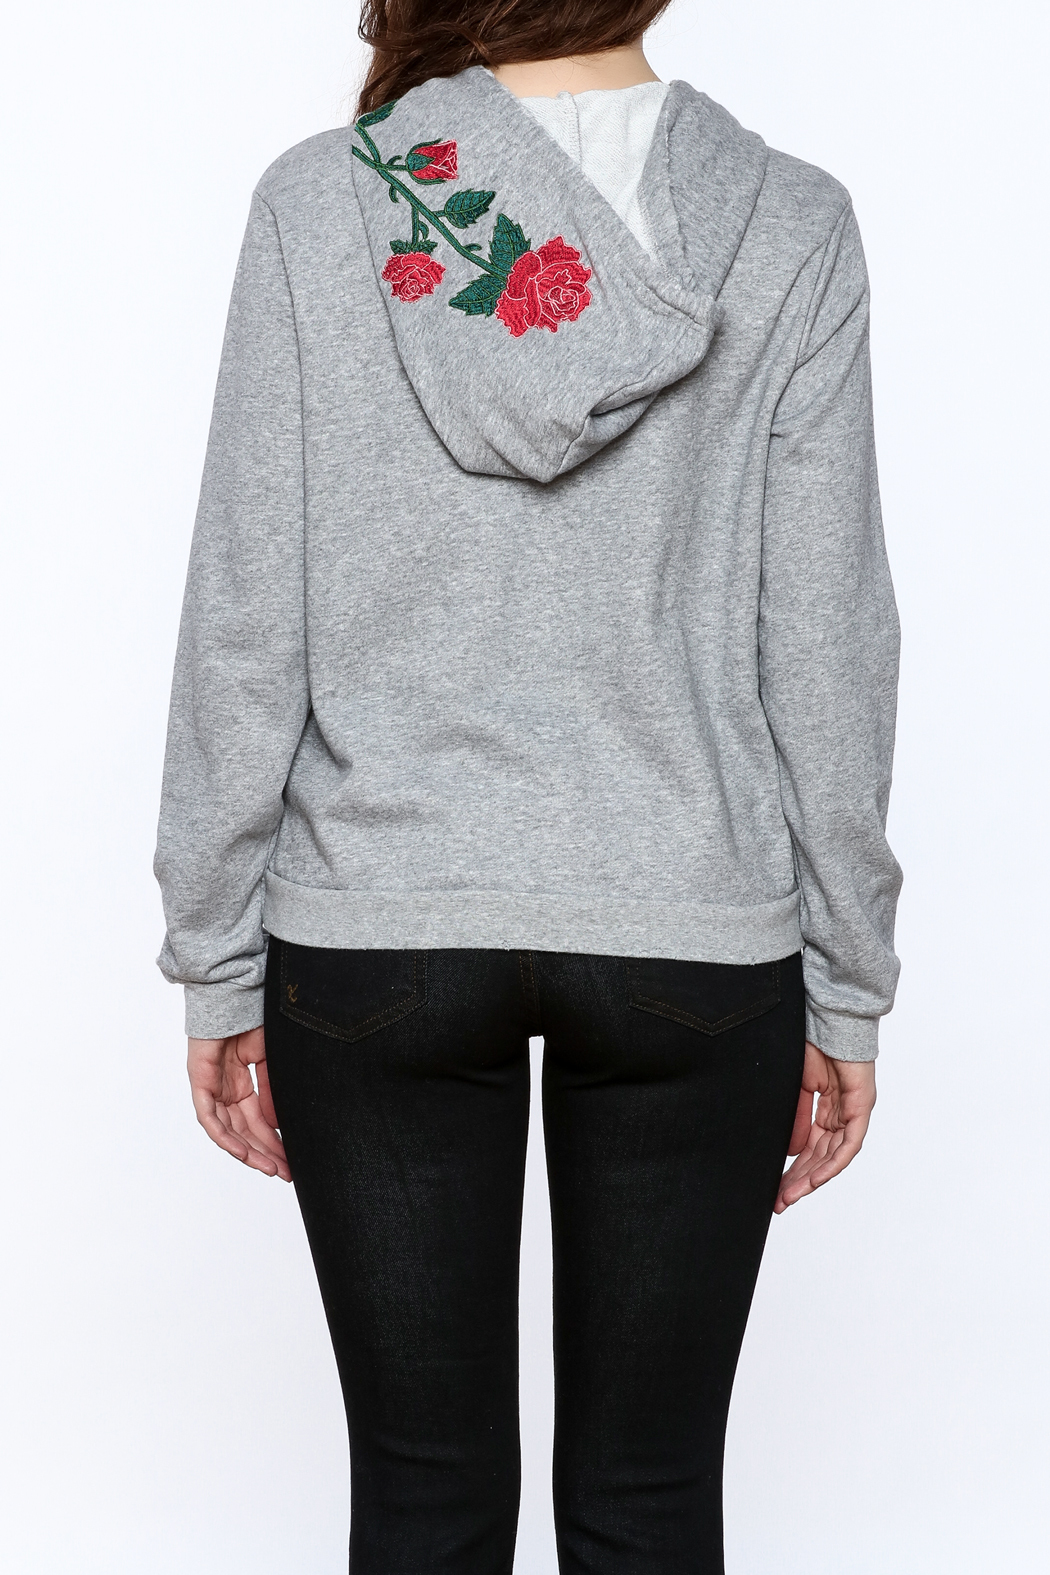 Honey Punch Grey Embroidered Sweater - Back Cropped Image